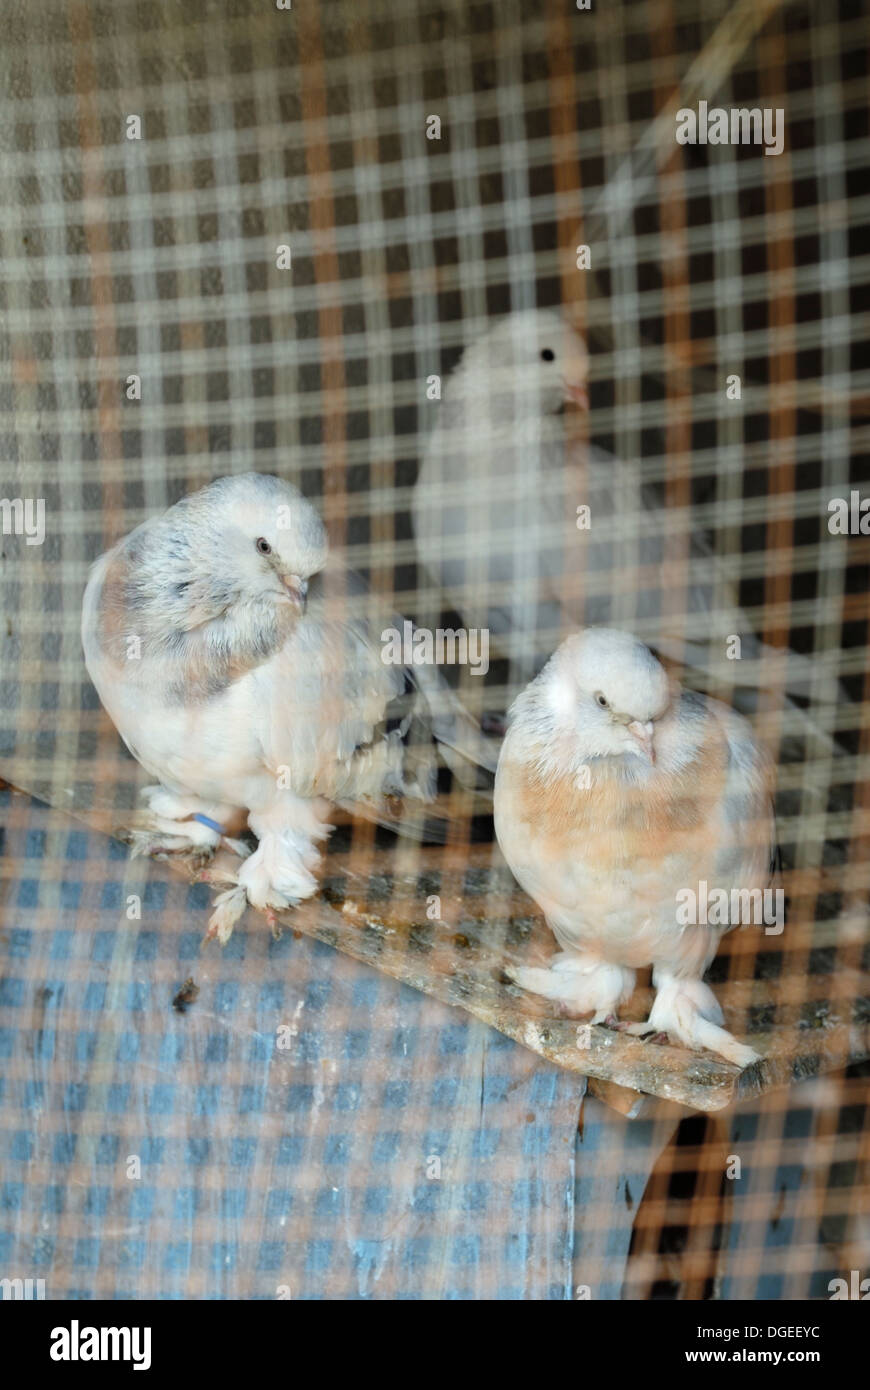 Three domestic pigeons in coop - Stock Image